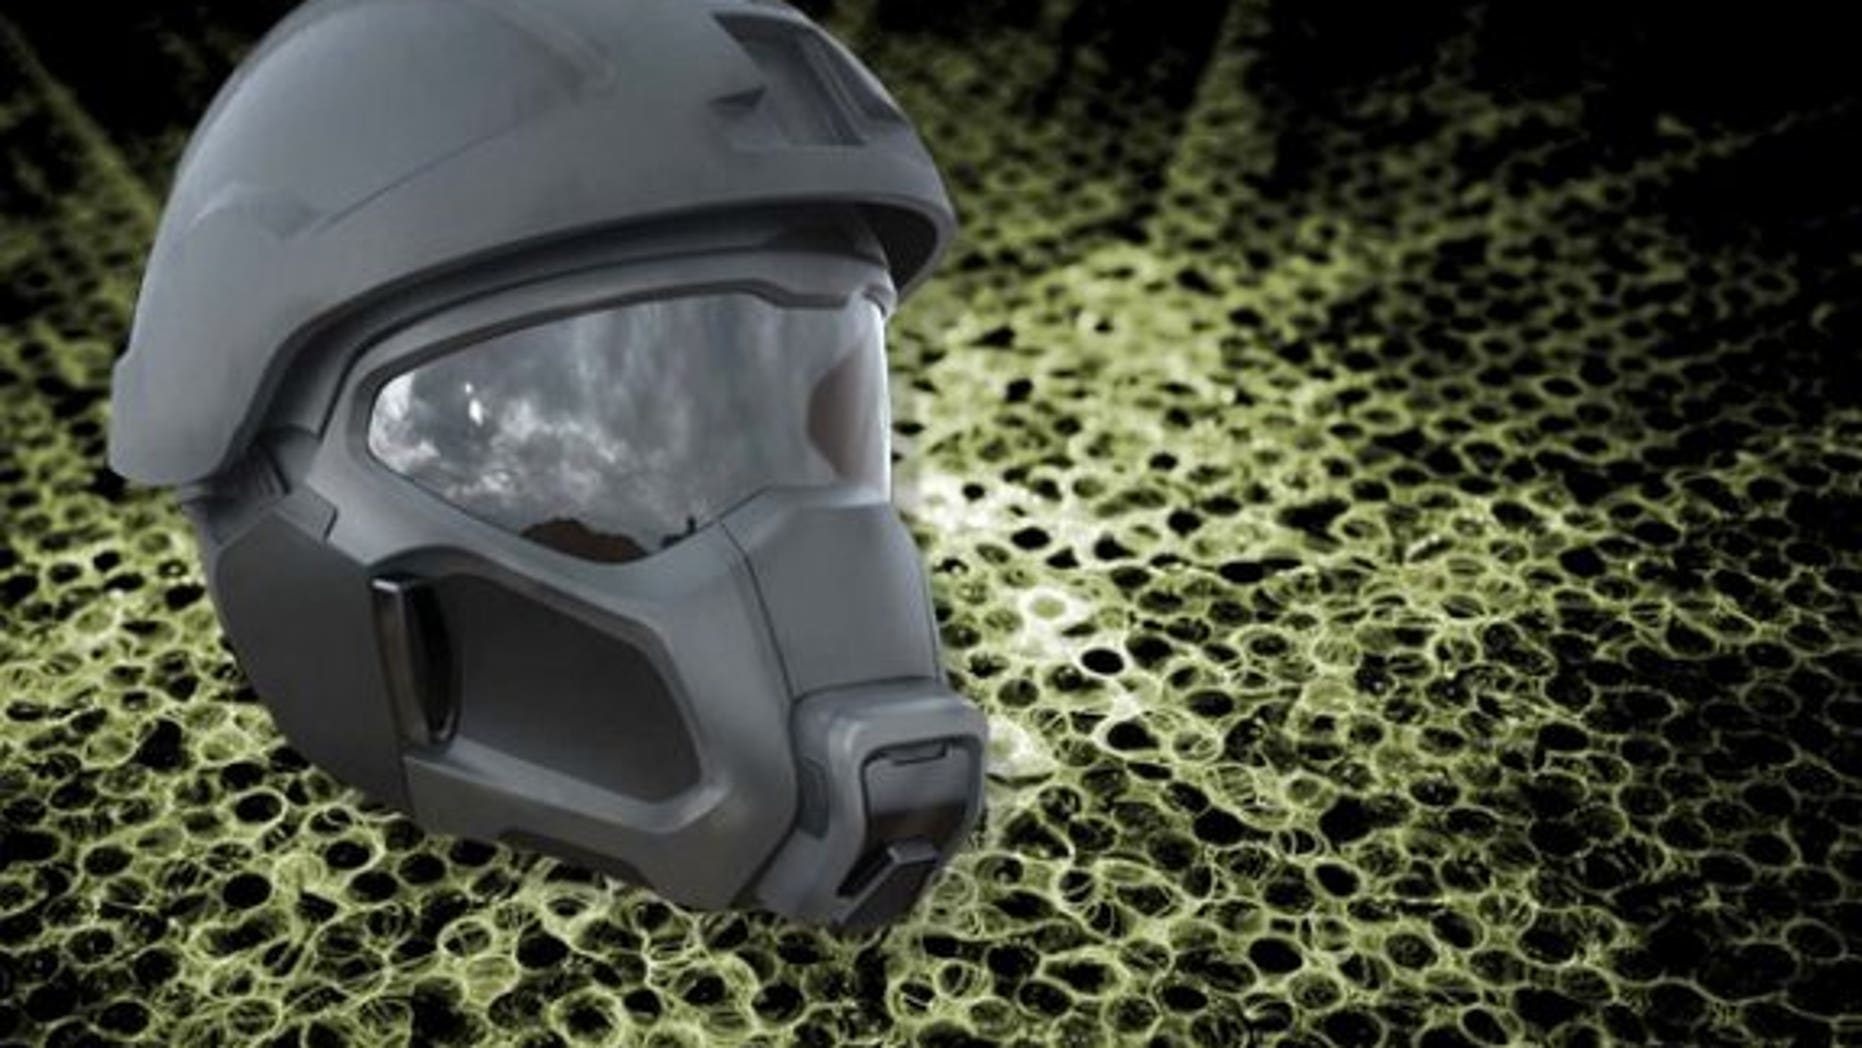 Don't be a hothead: The Army's new helmets will keep soldiers cool in a battlezone.